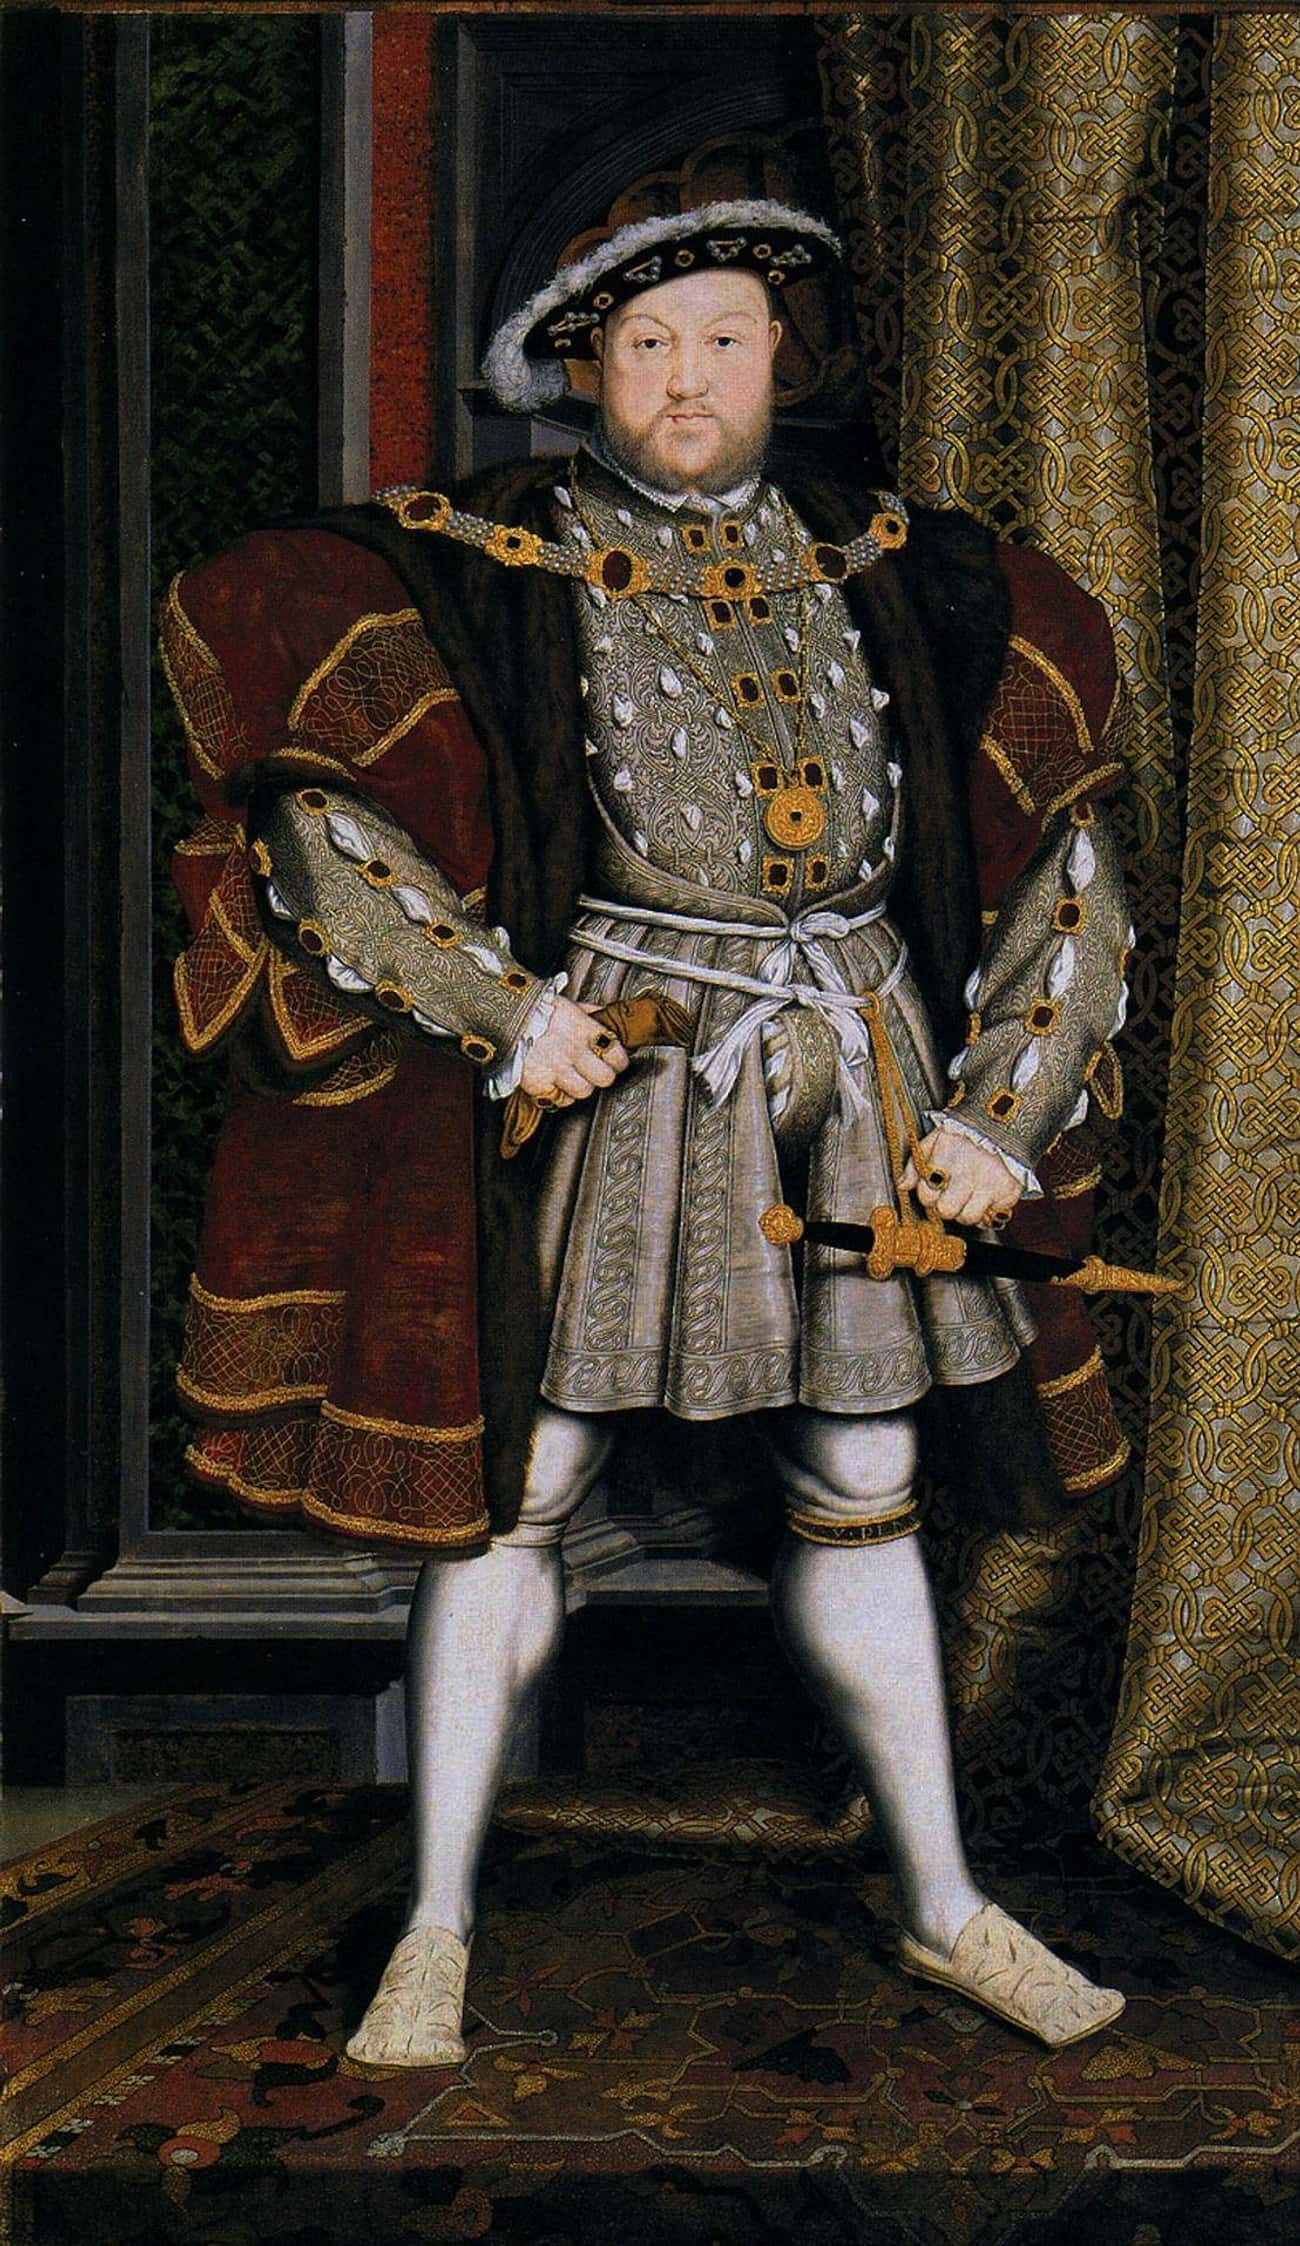 He Was So Fat He Had To Be Hoi is listed (or ranked) 2 on the list 15 Strange Facts About Henry VIII You Definitely Didn't Learn in History Class